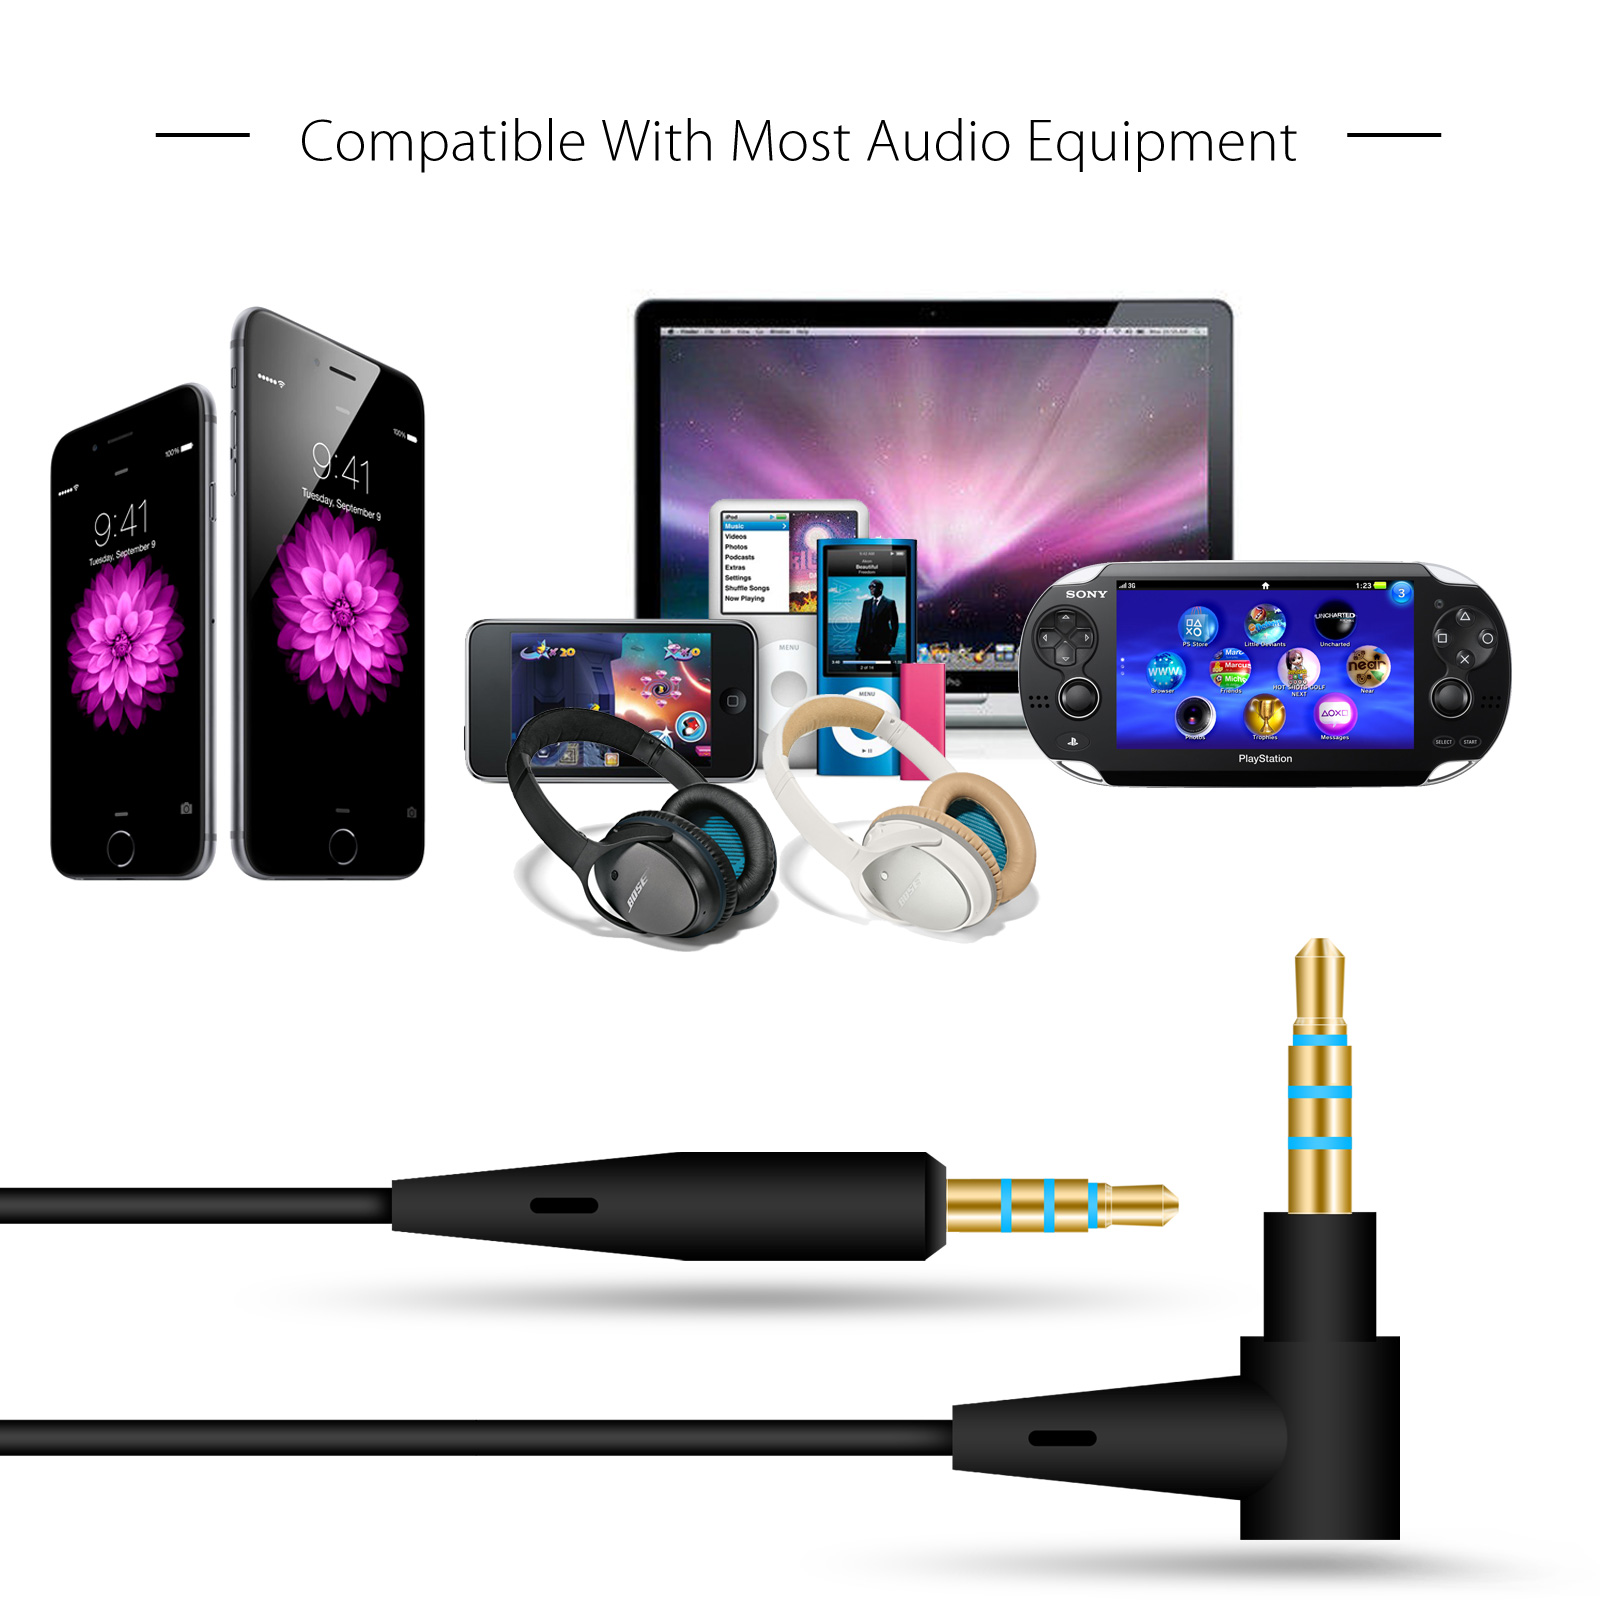 Details about Cable Remote Mic For Bose QuietComfort 25 35 QC25 QC35  Headphone Android Phone